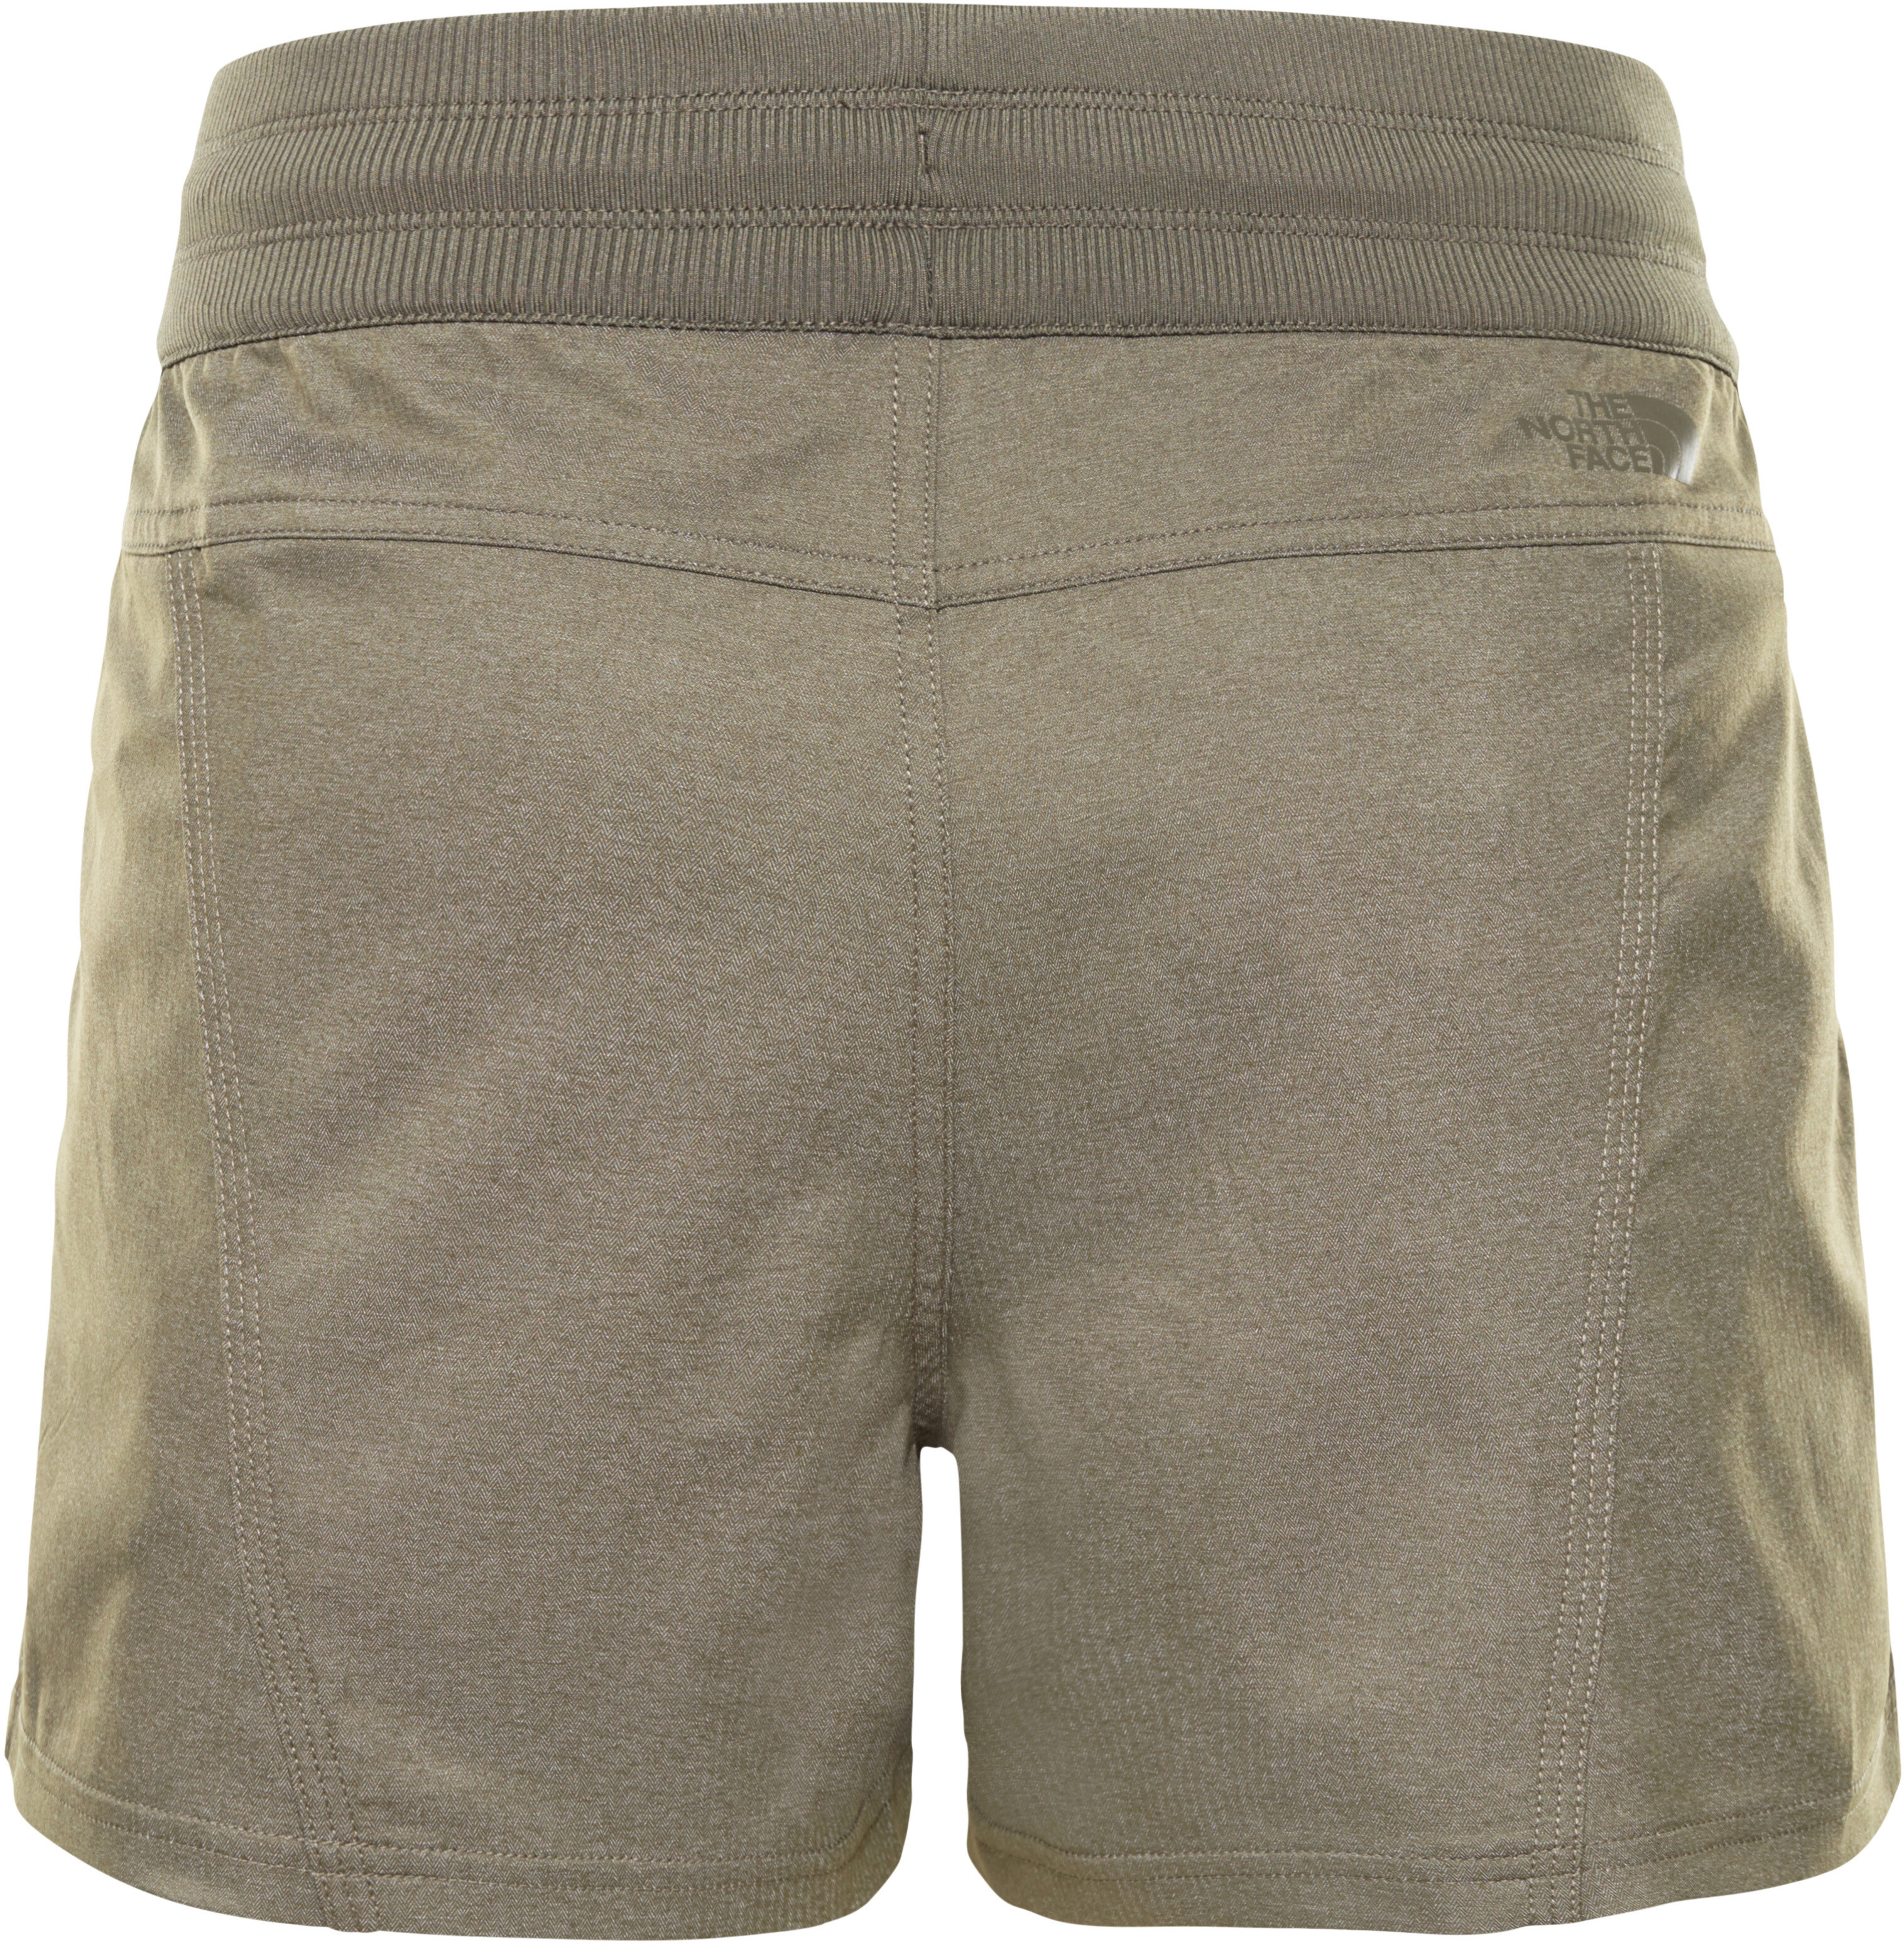 cf8f7538edf The North Face Aphrodite 2.0 Shorts Women beige at Addnature.co.uk